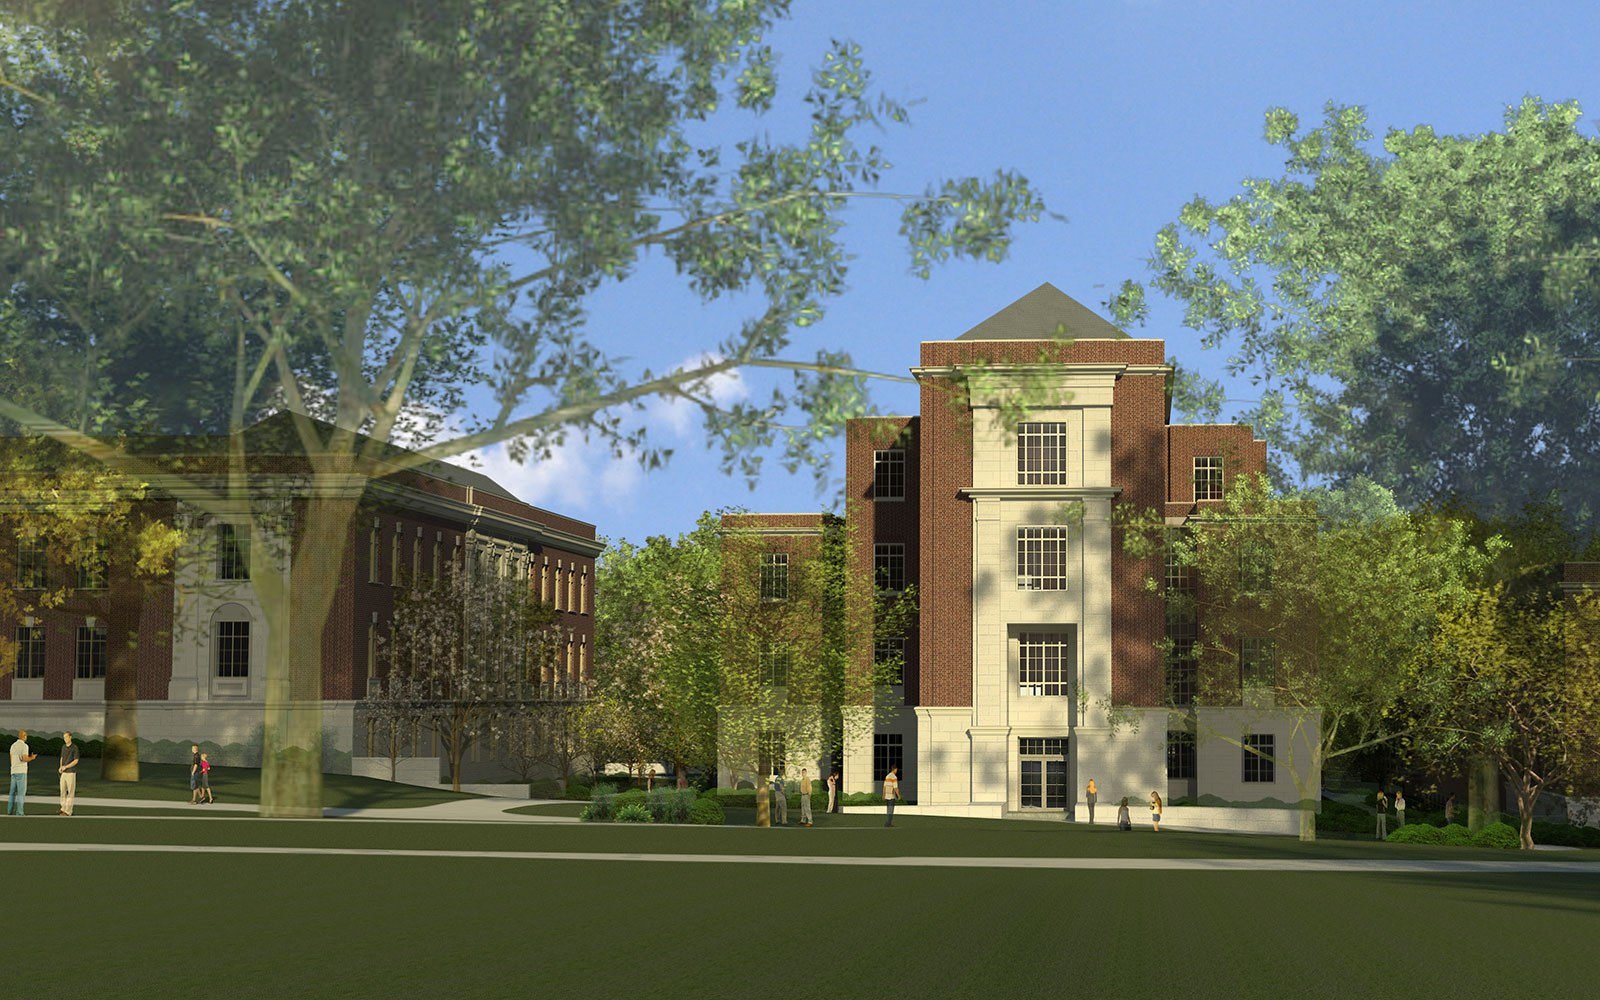 Rendering of the Biobehavioral Health Building as viewed from the Henderson mall and Old Main Lawn